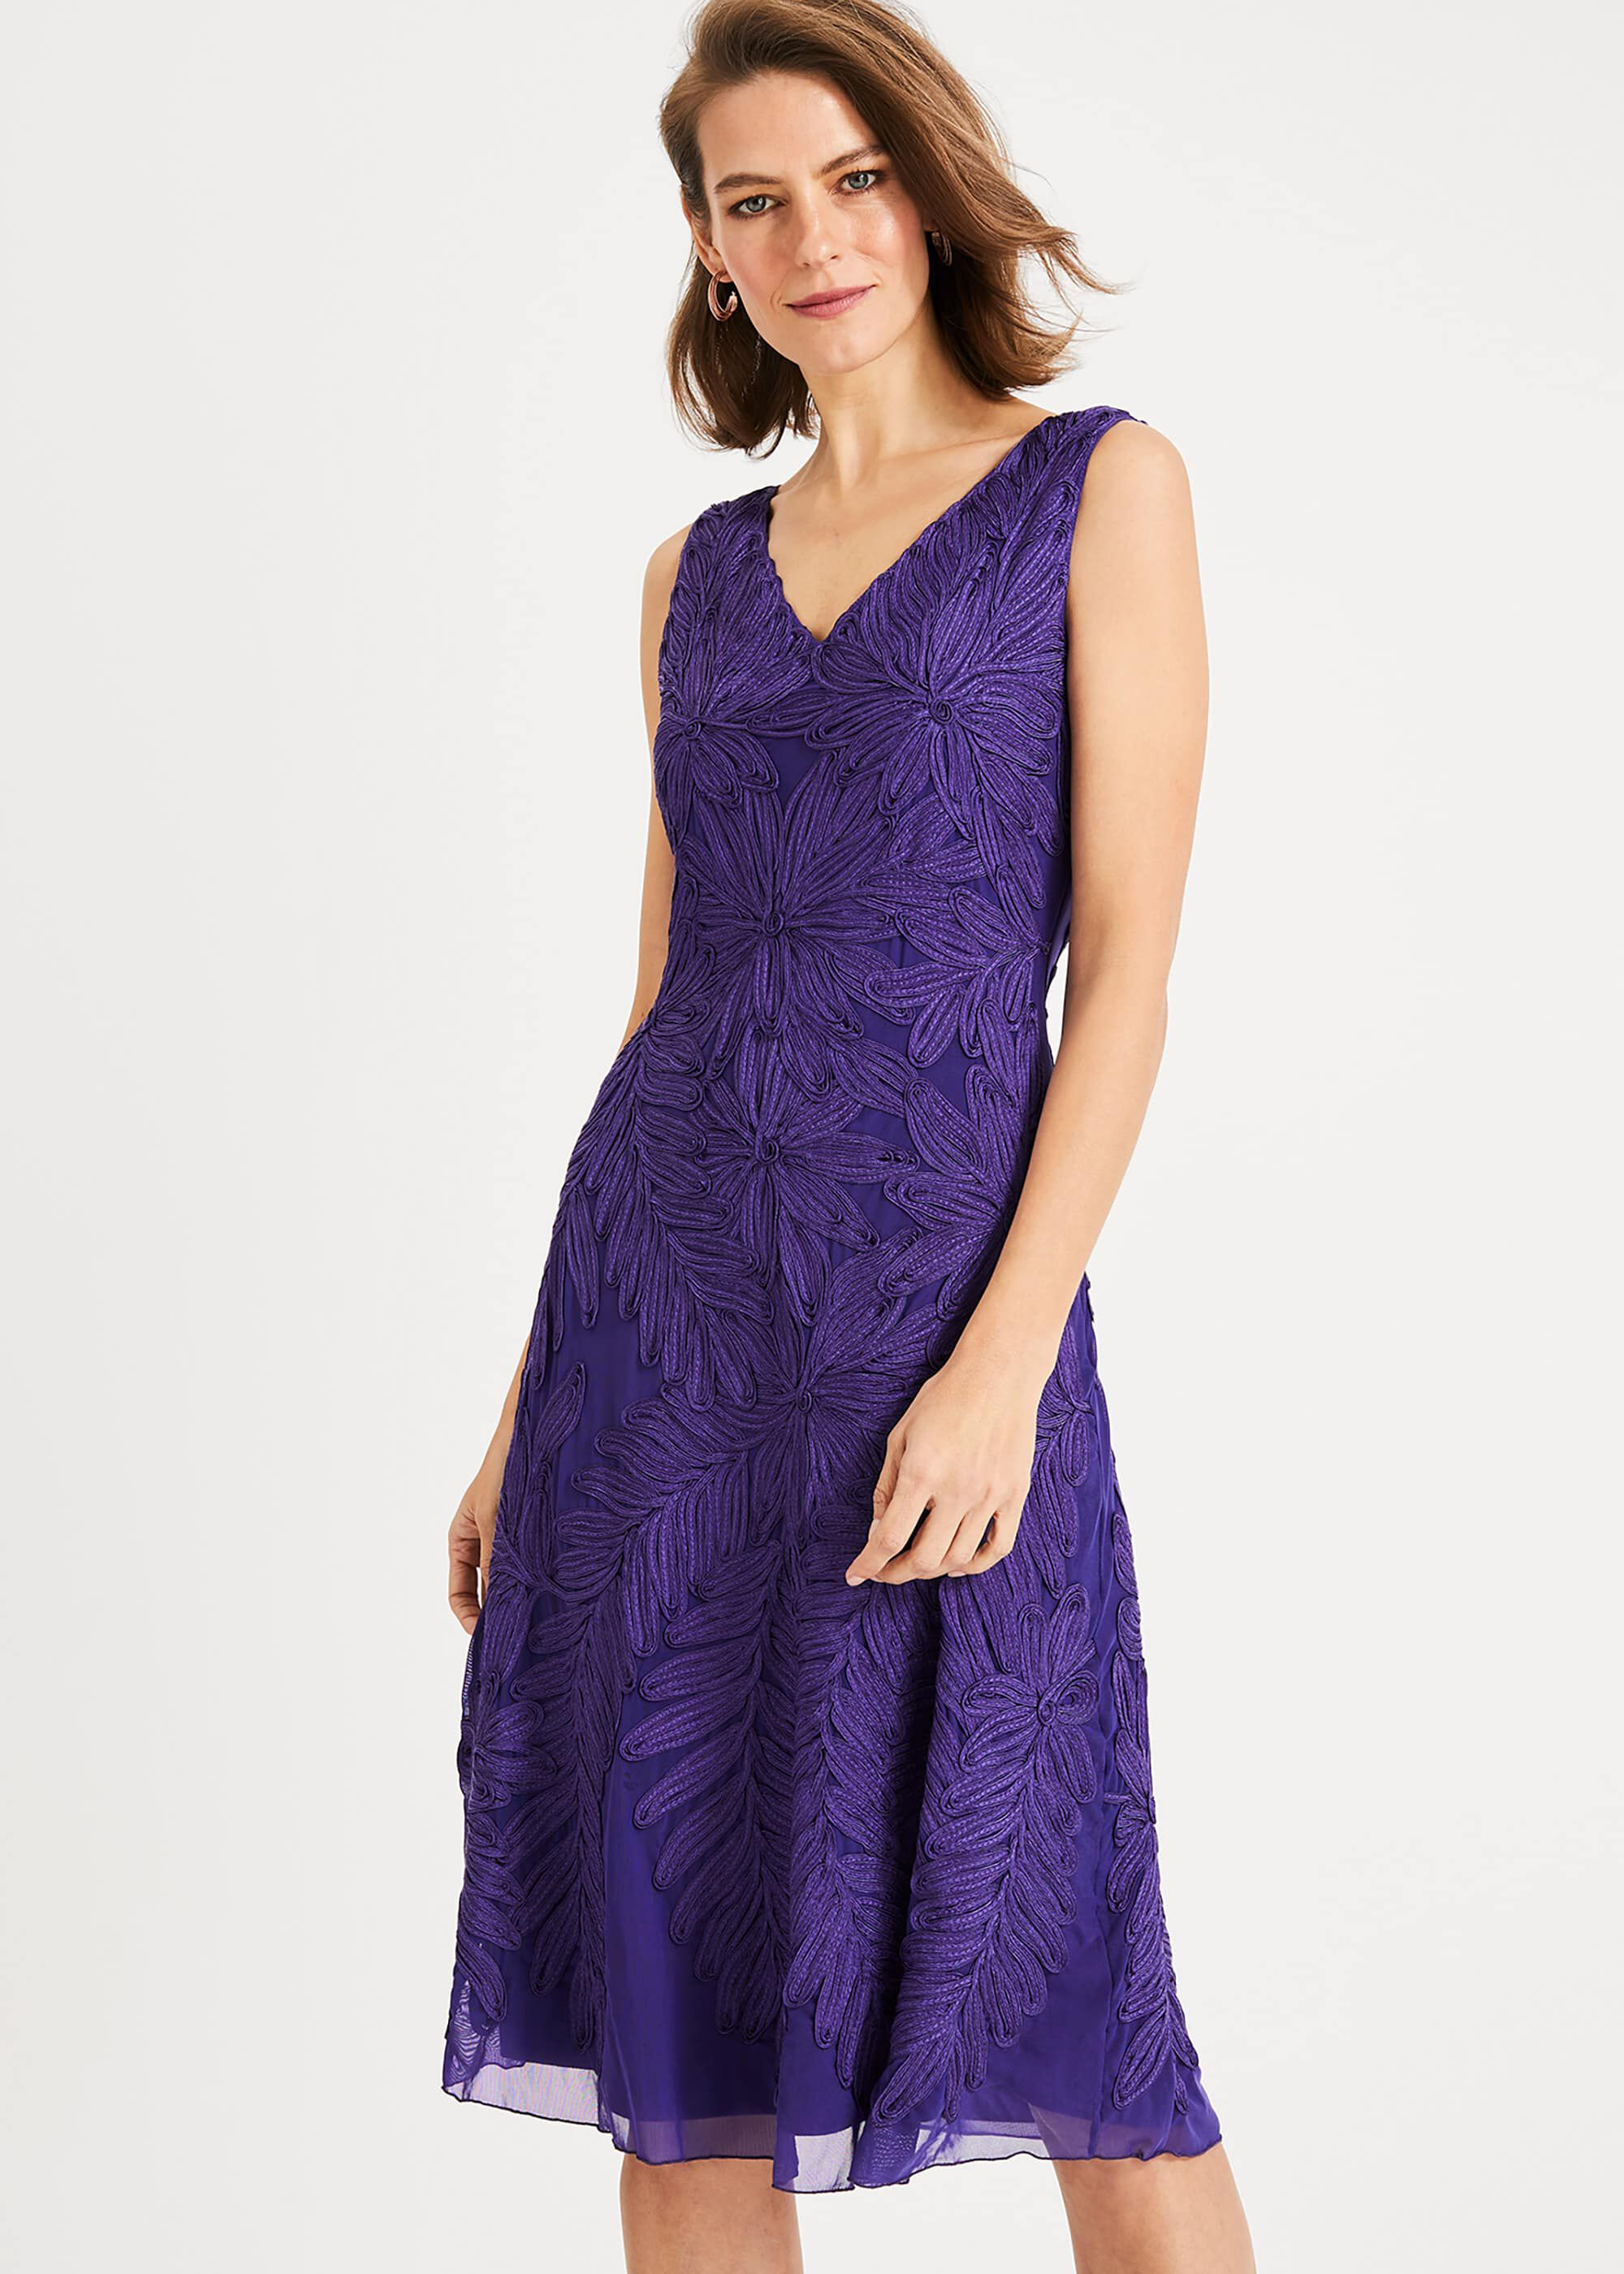 Phase Eight Denise Tapework Dress, Purple, Fit & Flare